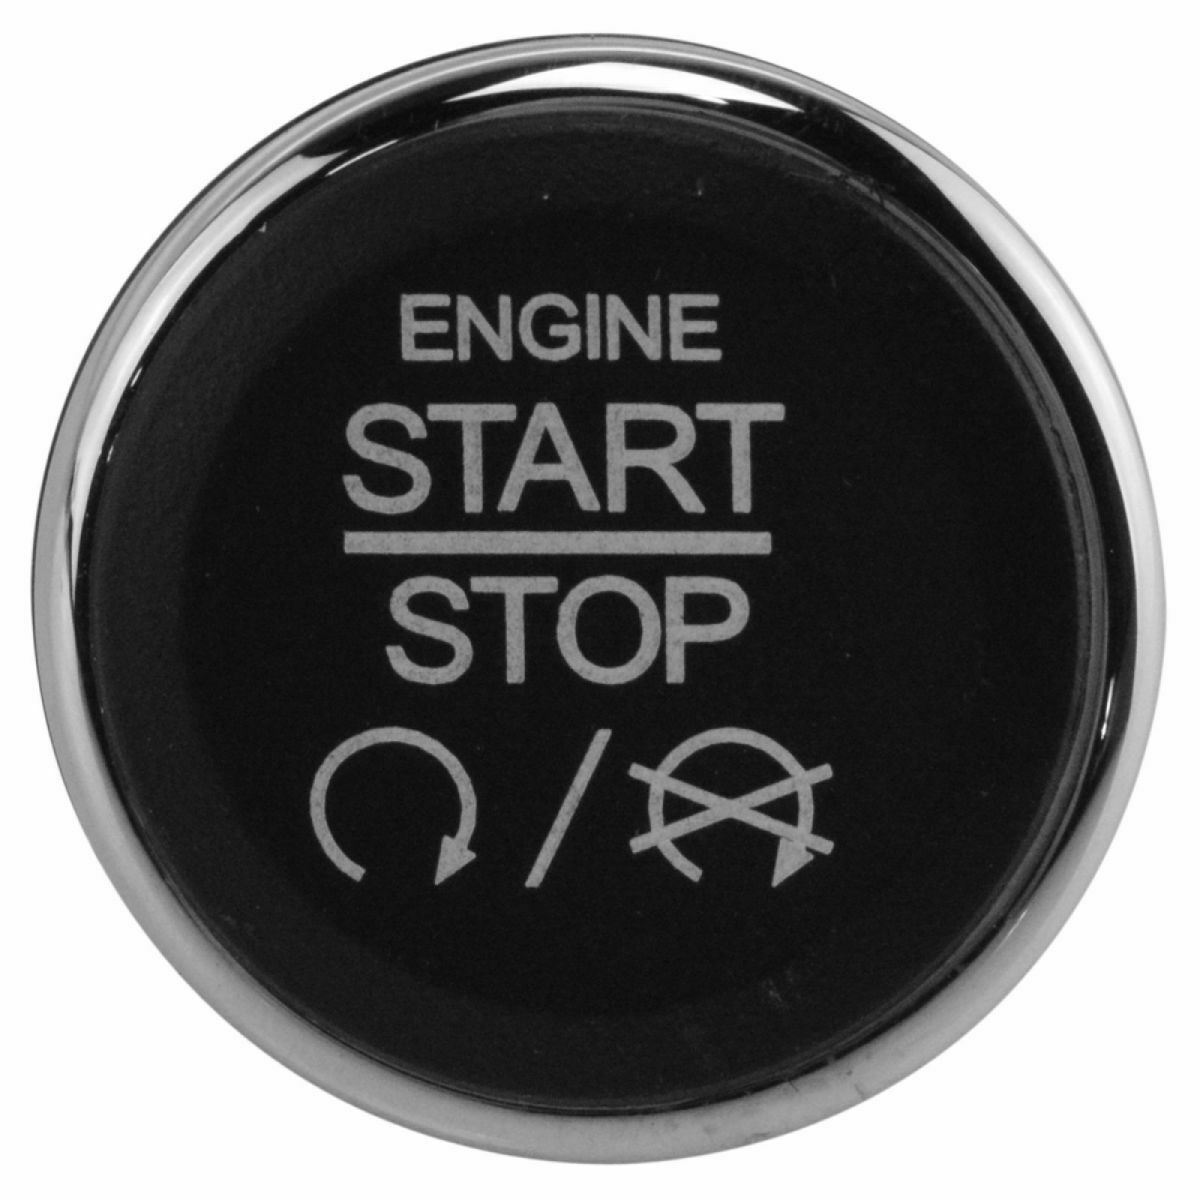 One-click Starting Switch Ignition Starter Switch Dash Mount Push Button For Jeep Dodge Chrysler Black